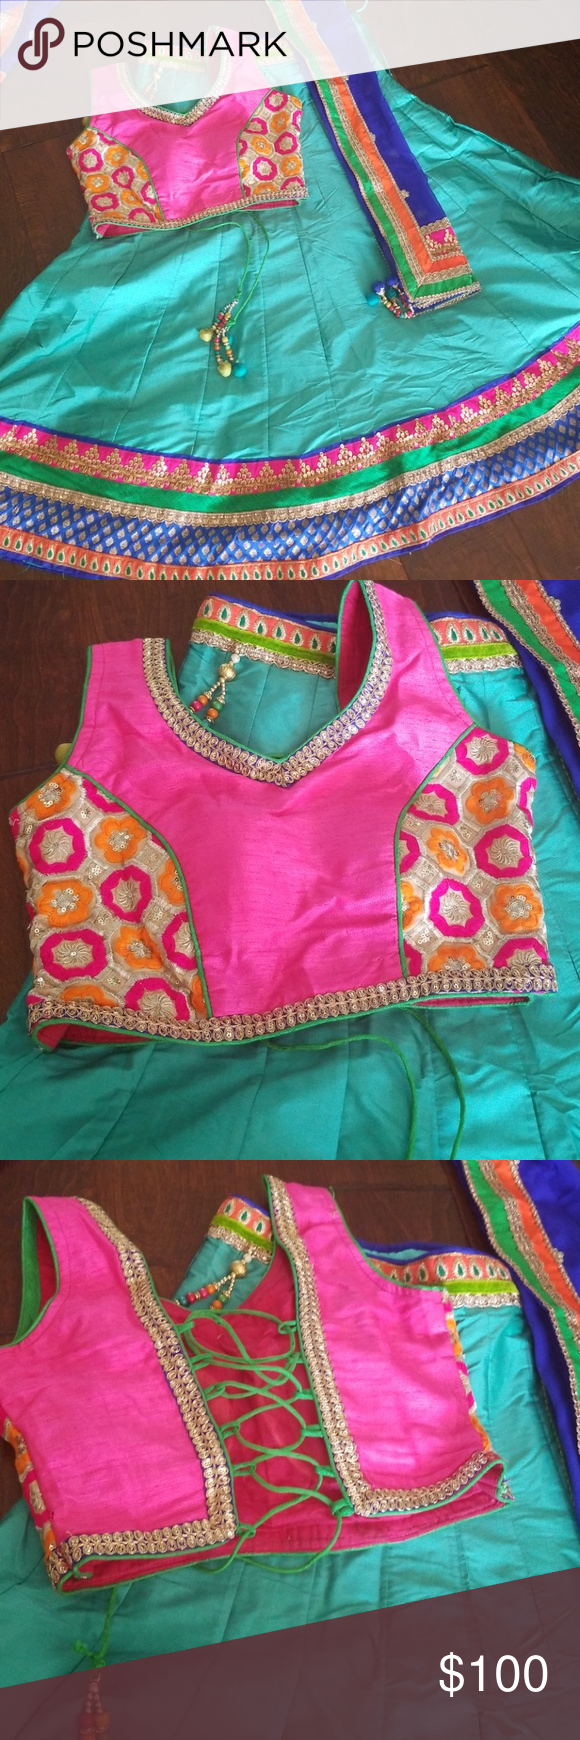 Girls chaniya choli! Garba, navratri wear! Very beautiful choli with strings on back. Blue odhani with border works,  Chaniya 's waistlines n bottom with nice border works! Choli size can be adjusted up 32. Lengh is 33inches. FINAL PRICE! Other #chaniyacholi